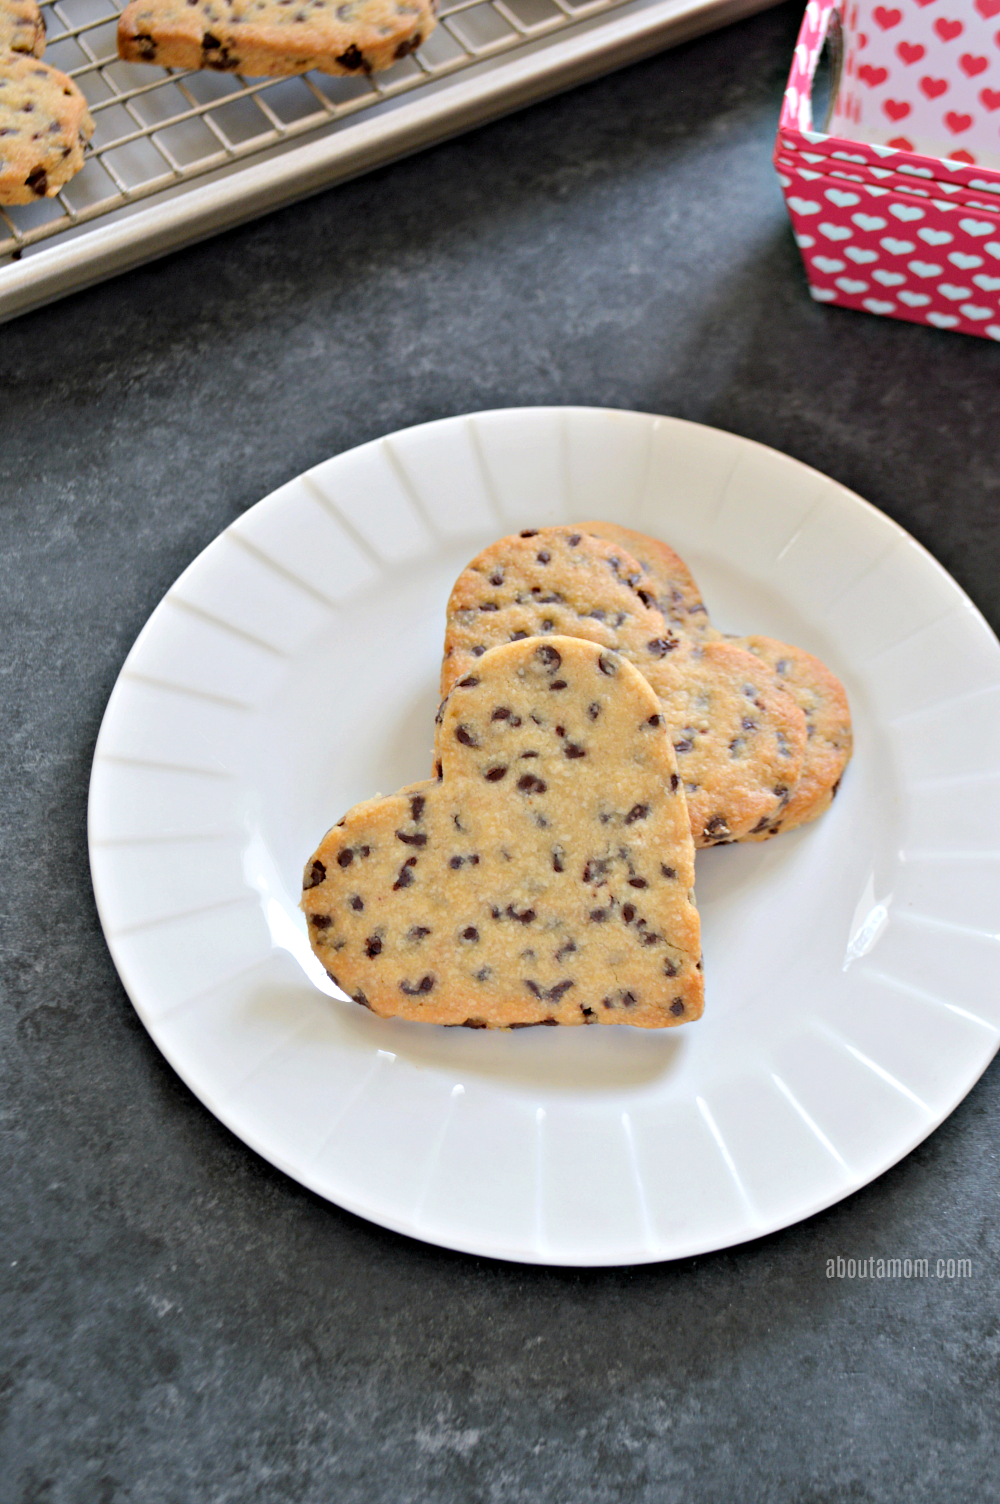 1 cup unsalted butter, softened ⅓ cup granulated sugar ½ cup light-brown sugar 1 large egg yolk 2 tsp vanilla extract 2 ½ cups all-purpose flour ½ tsp salt 1 ½ cups semi-sweet mini-chocolate chips